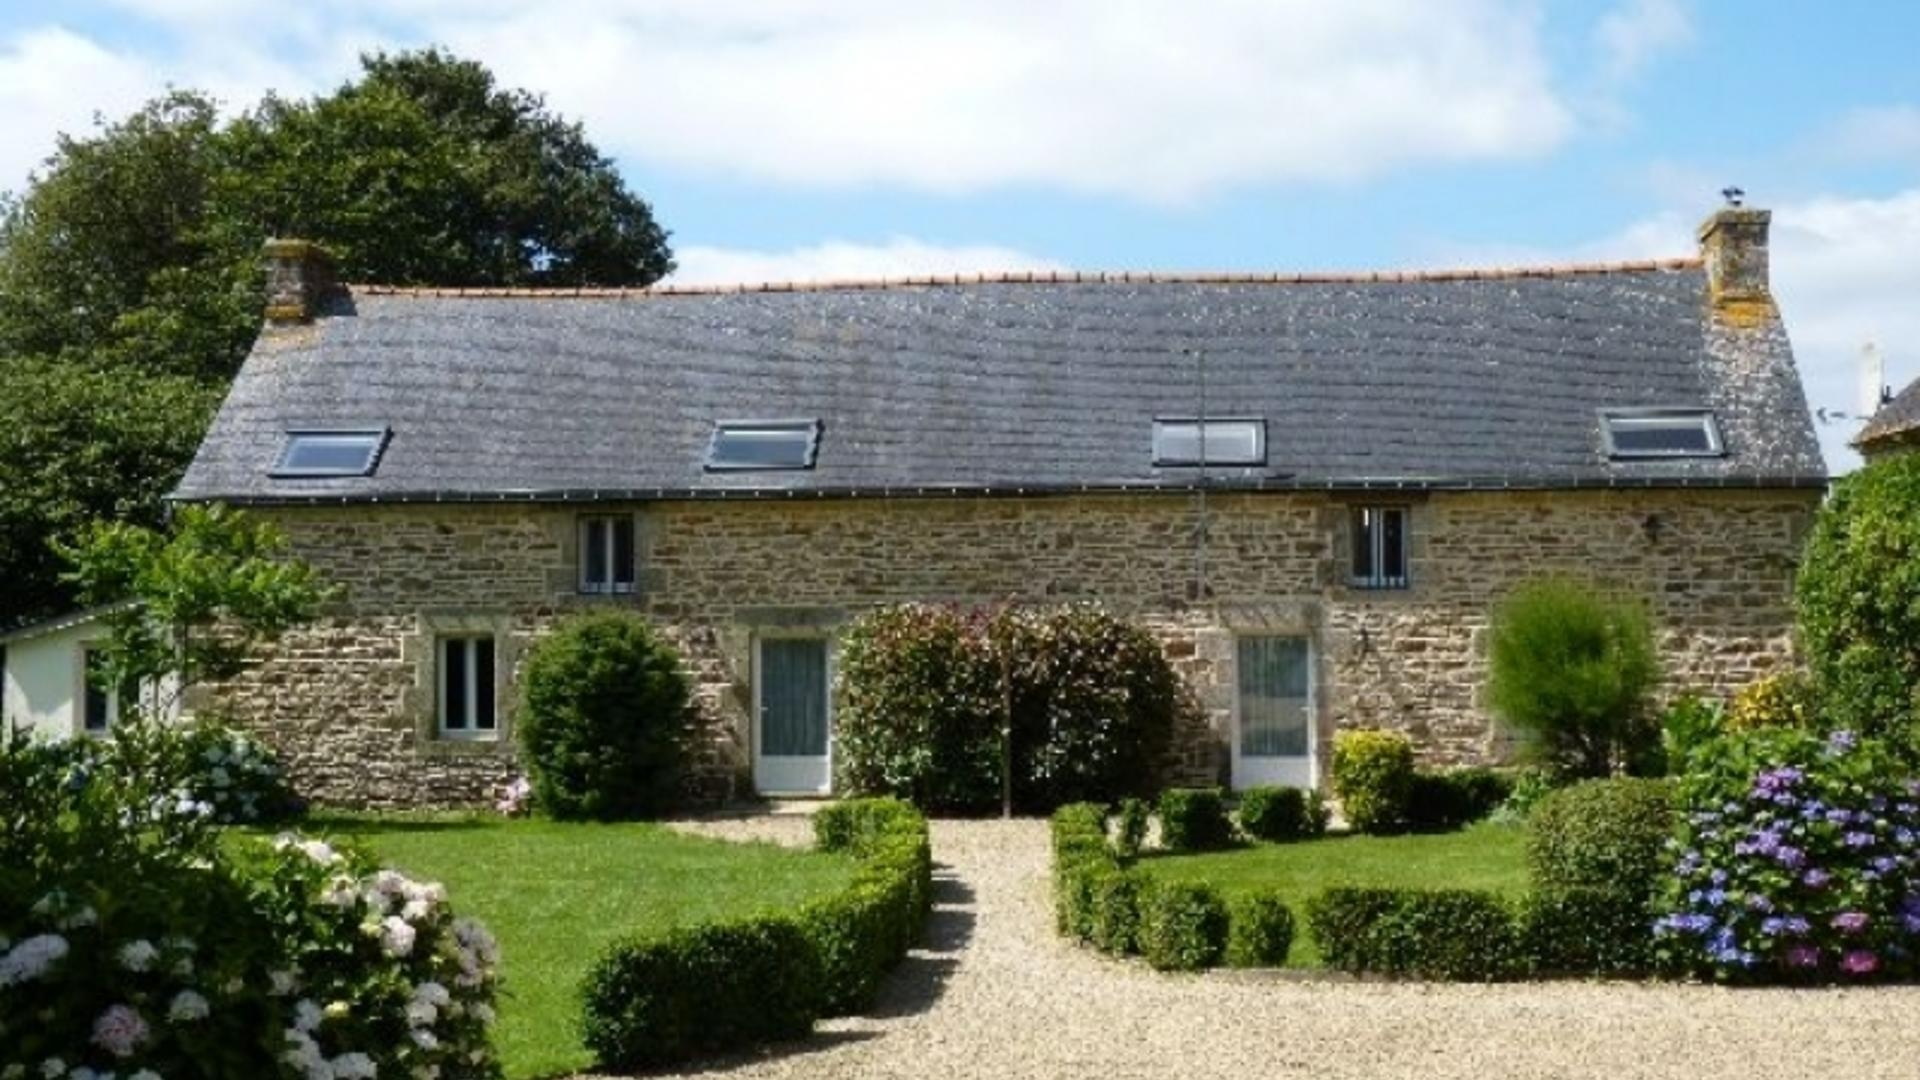 3 Bedroom Cottage/shared facilities in Brittany, France